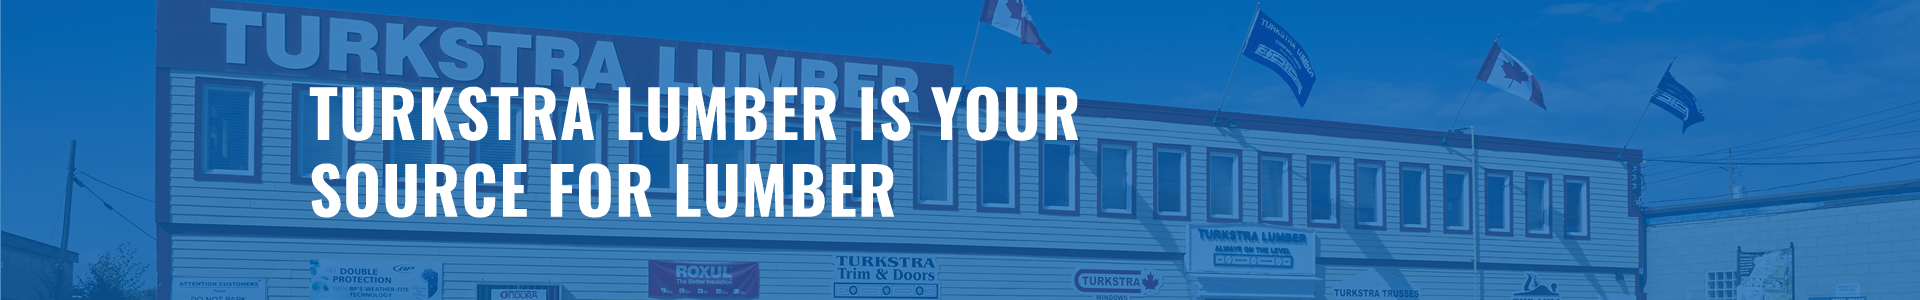 Turkstra Lumber Since 1953 - Dunnville fences, decks, windows, trim, doors, hardware, install, trusses, engineered floor systems